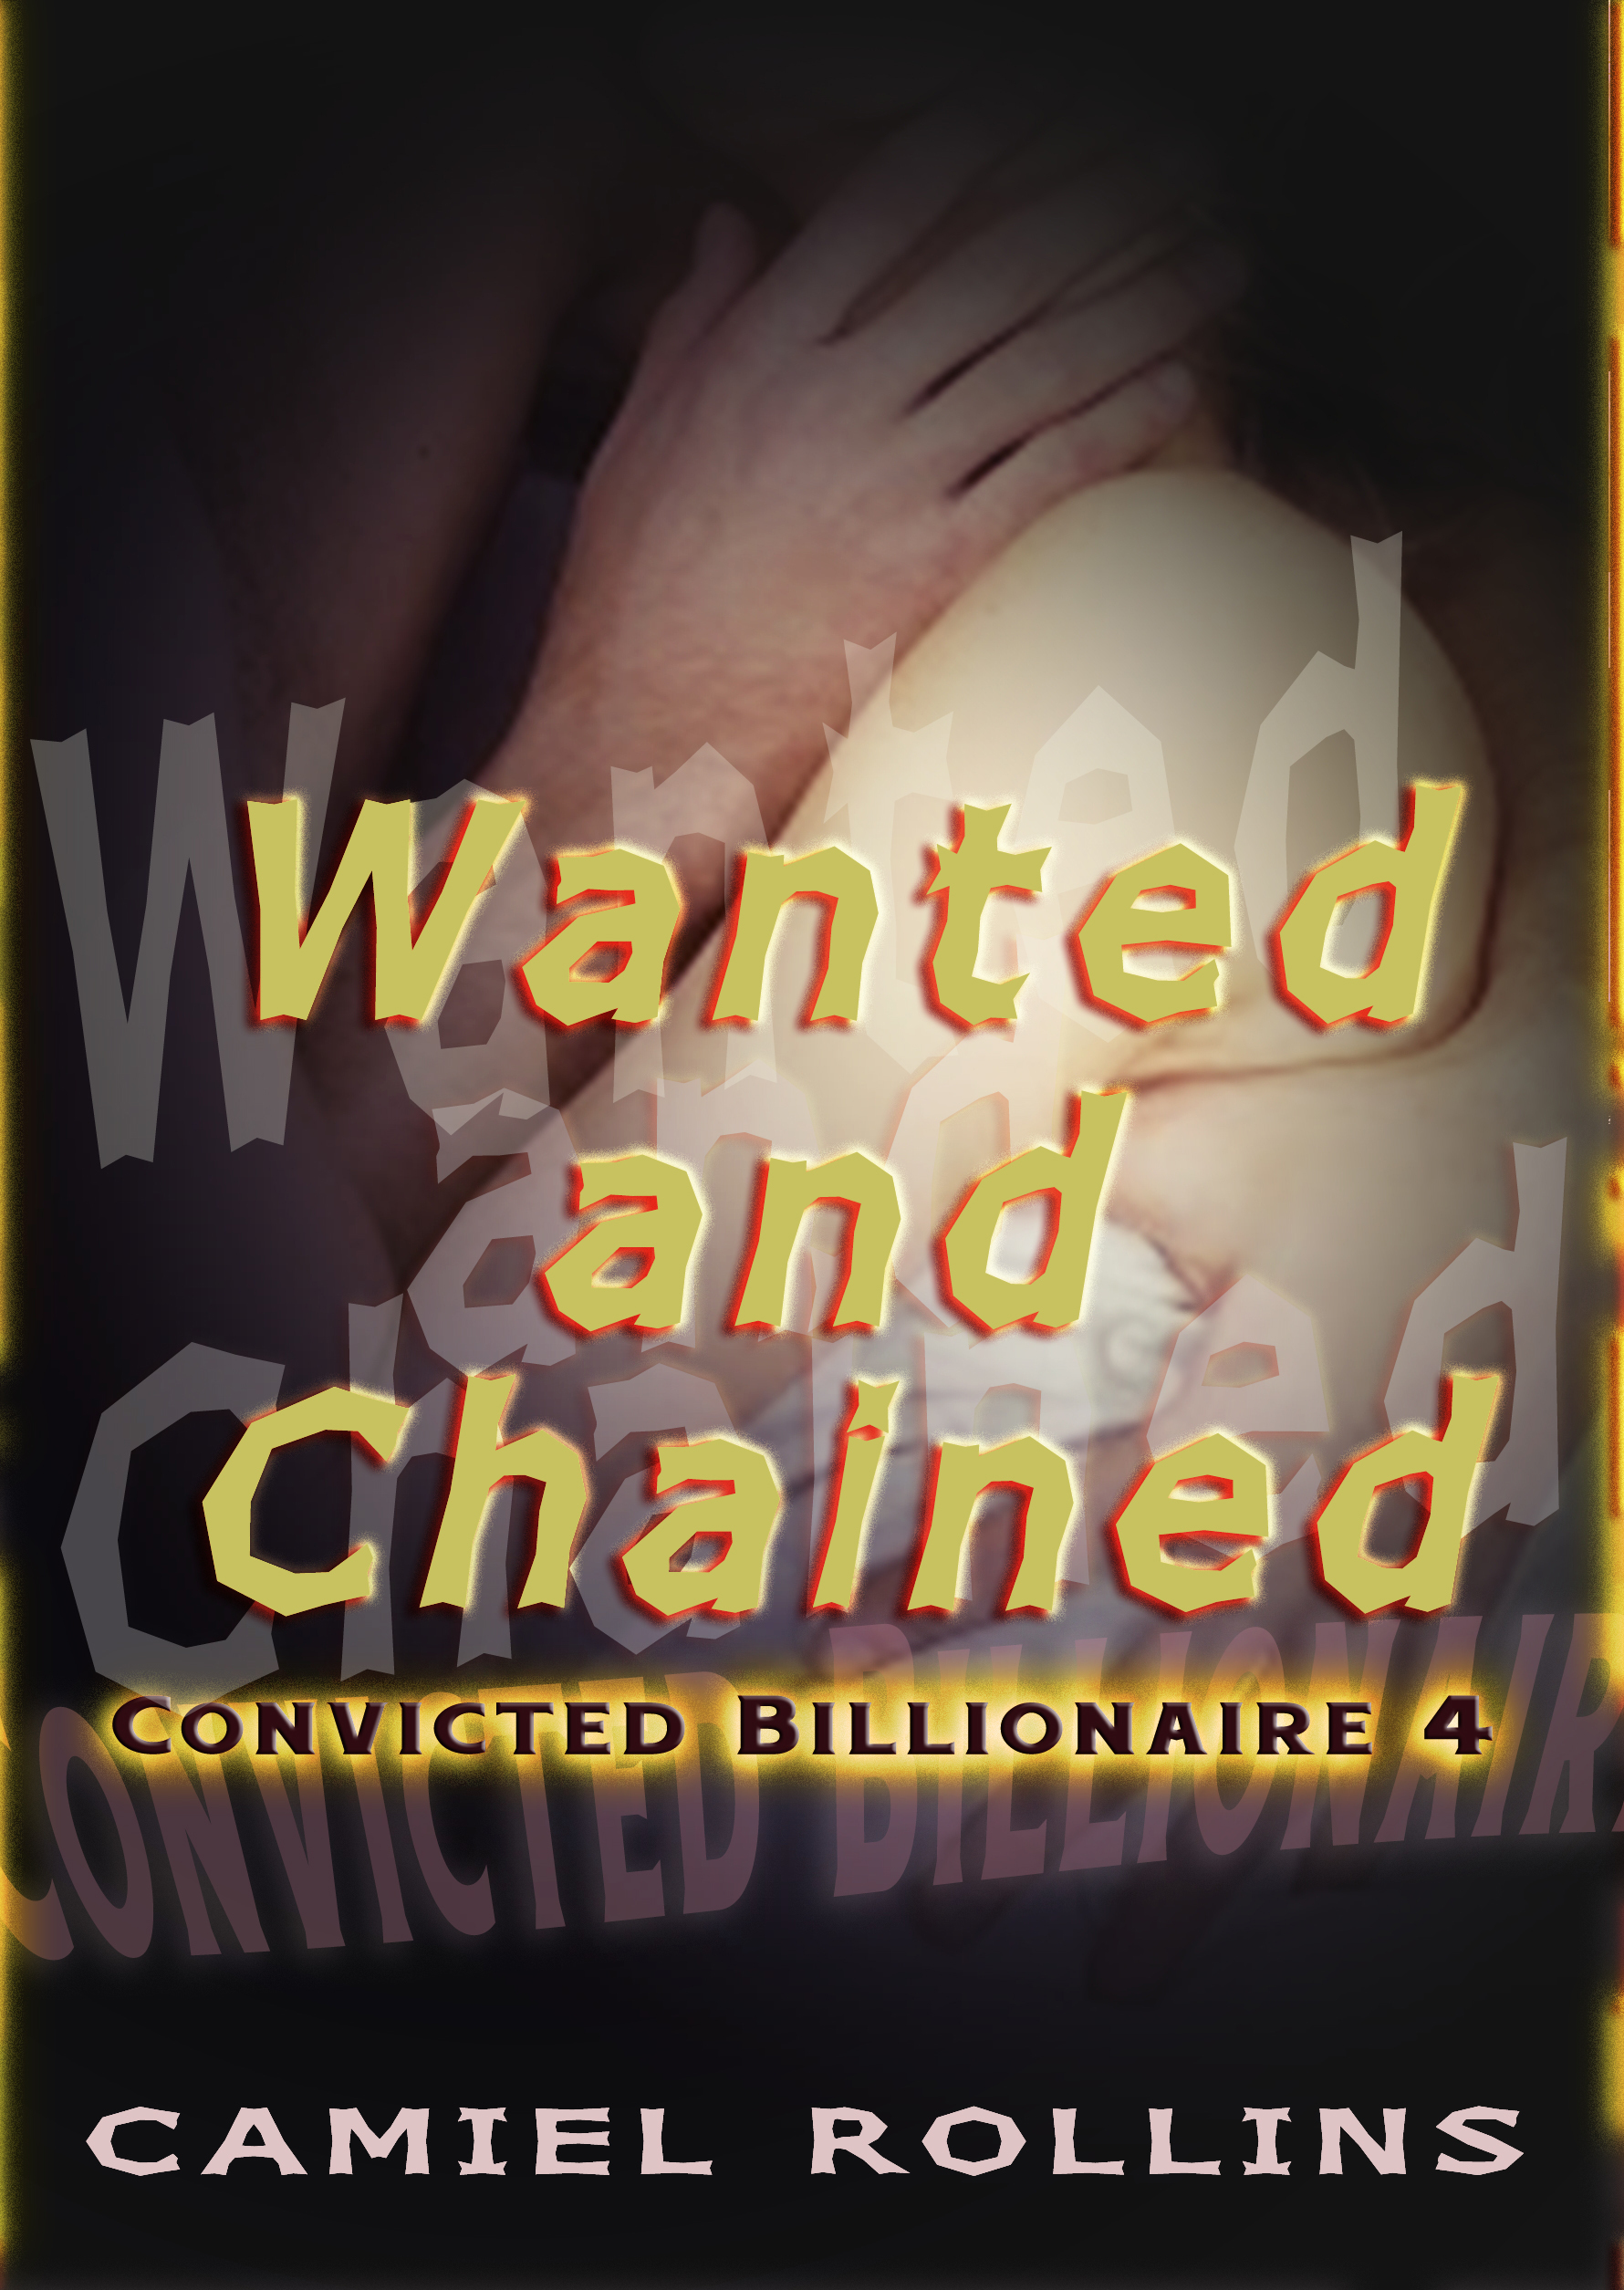 Wanted and Chained: Convicted Billionaire 4 Camiel Rollins